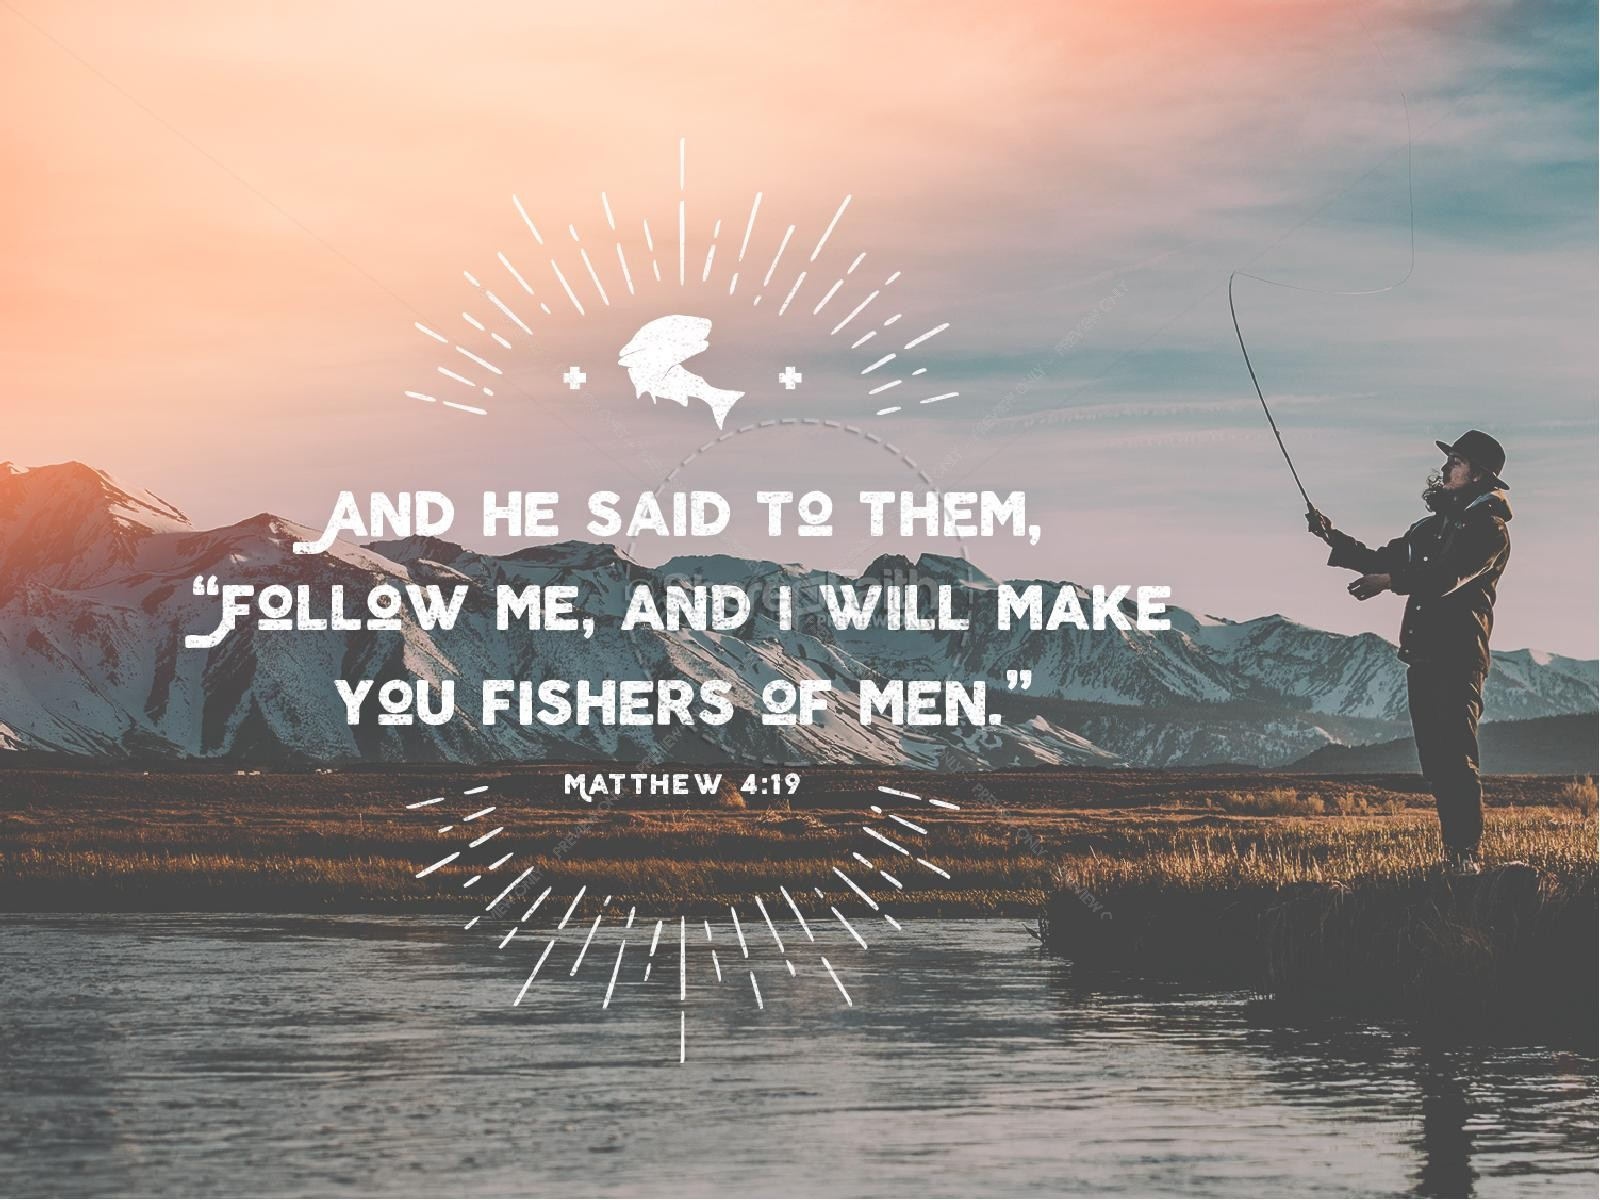 fishers of men Free fishers of men bible crafts, printables, worksheets, activities and more you can use these games in your personal homeschool or sunday school classroom.